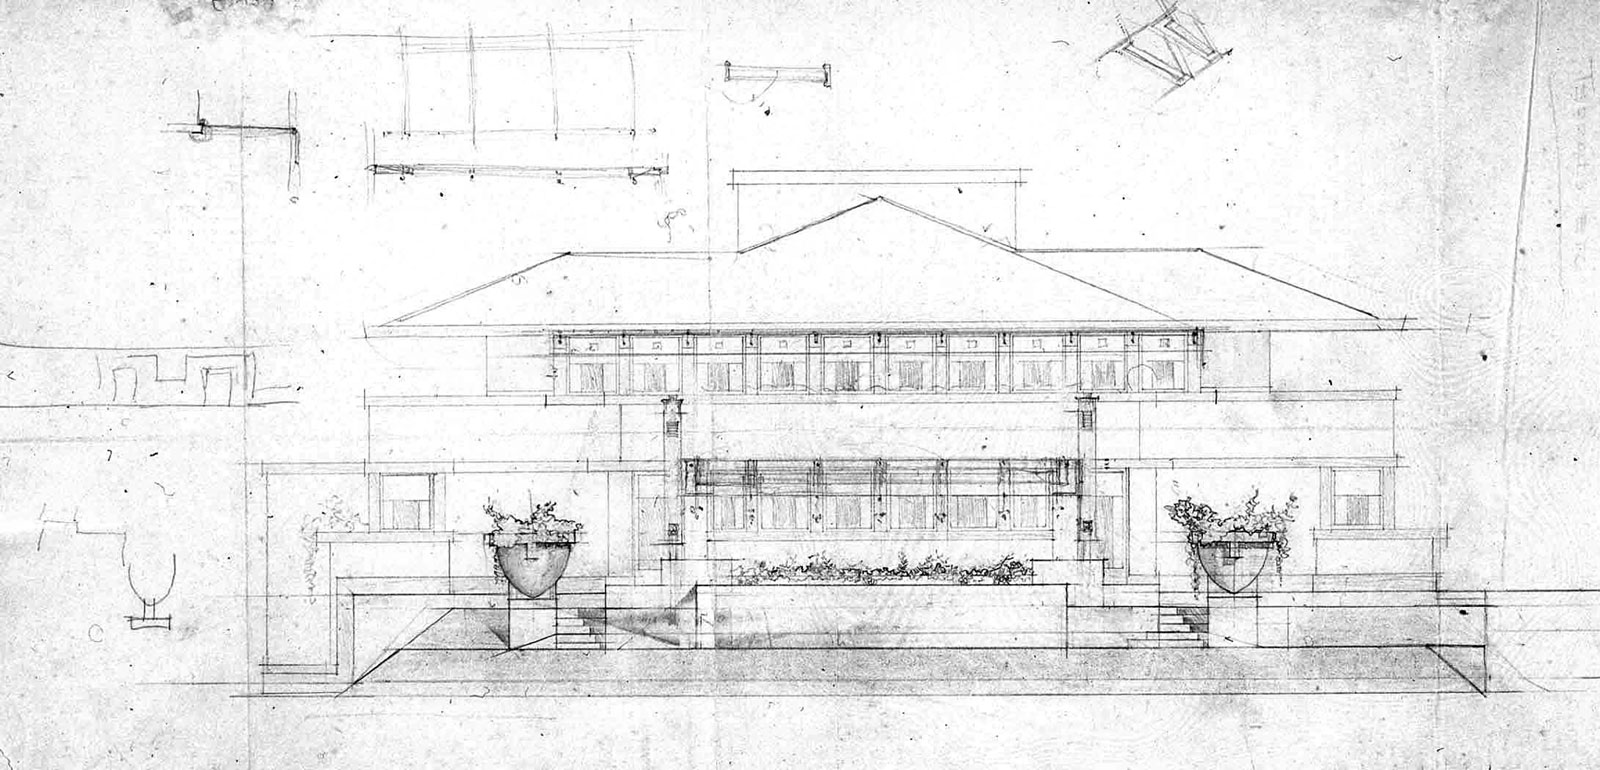 Frank lloyd wright westcott house vase garden artisans llc frank lloyd wright burton j westcott house drawing reviewsmspy